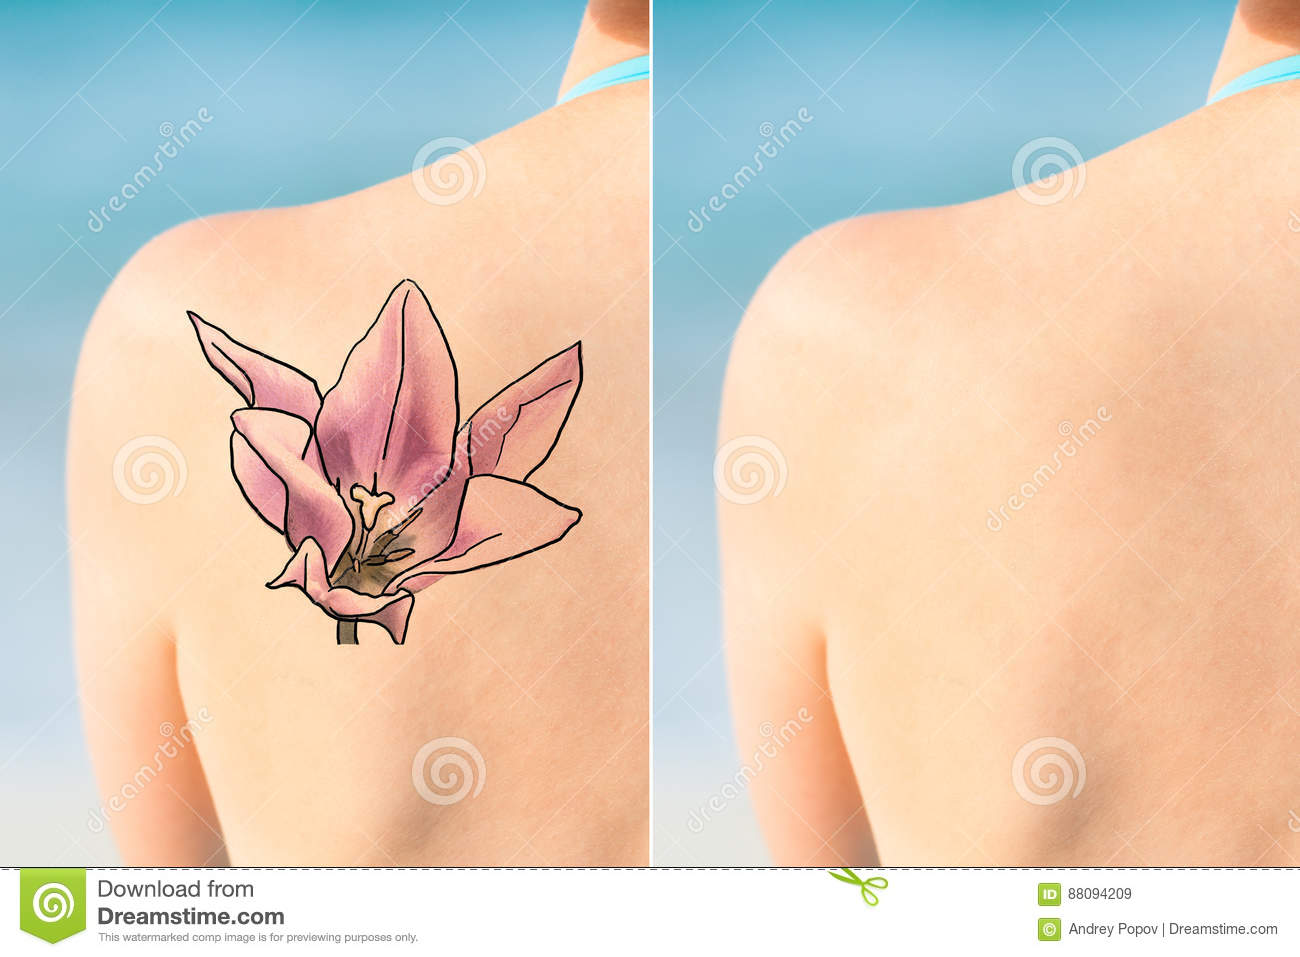 Person Showing Laser Tattoo Removal-Behandlung auf Schulter